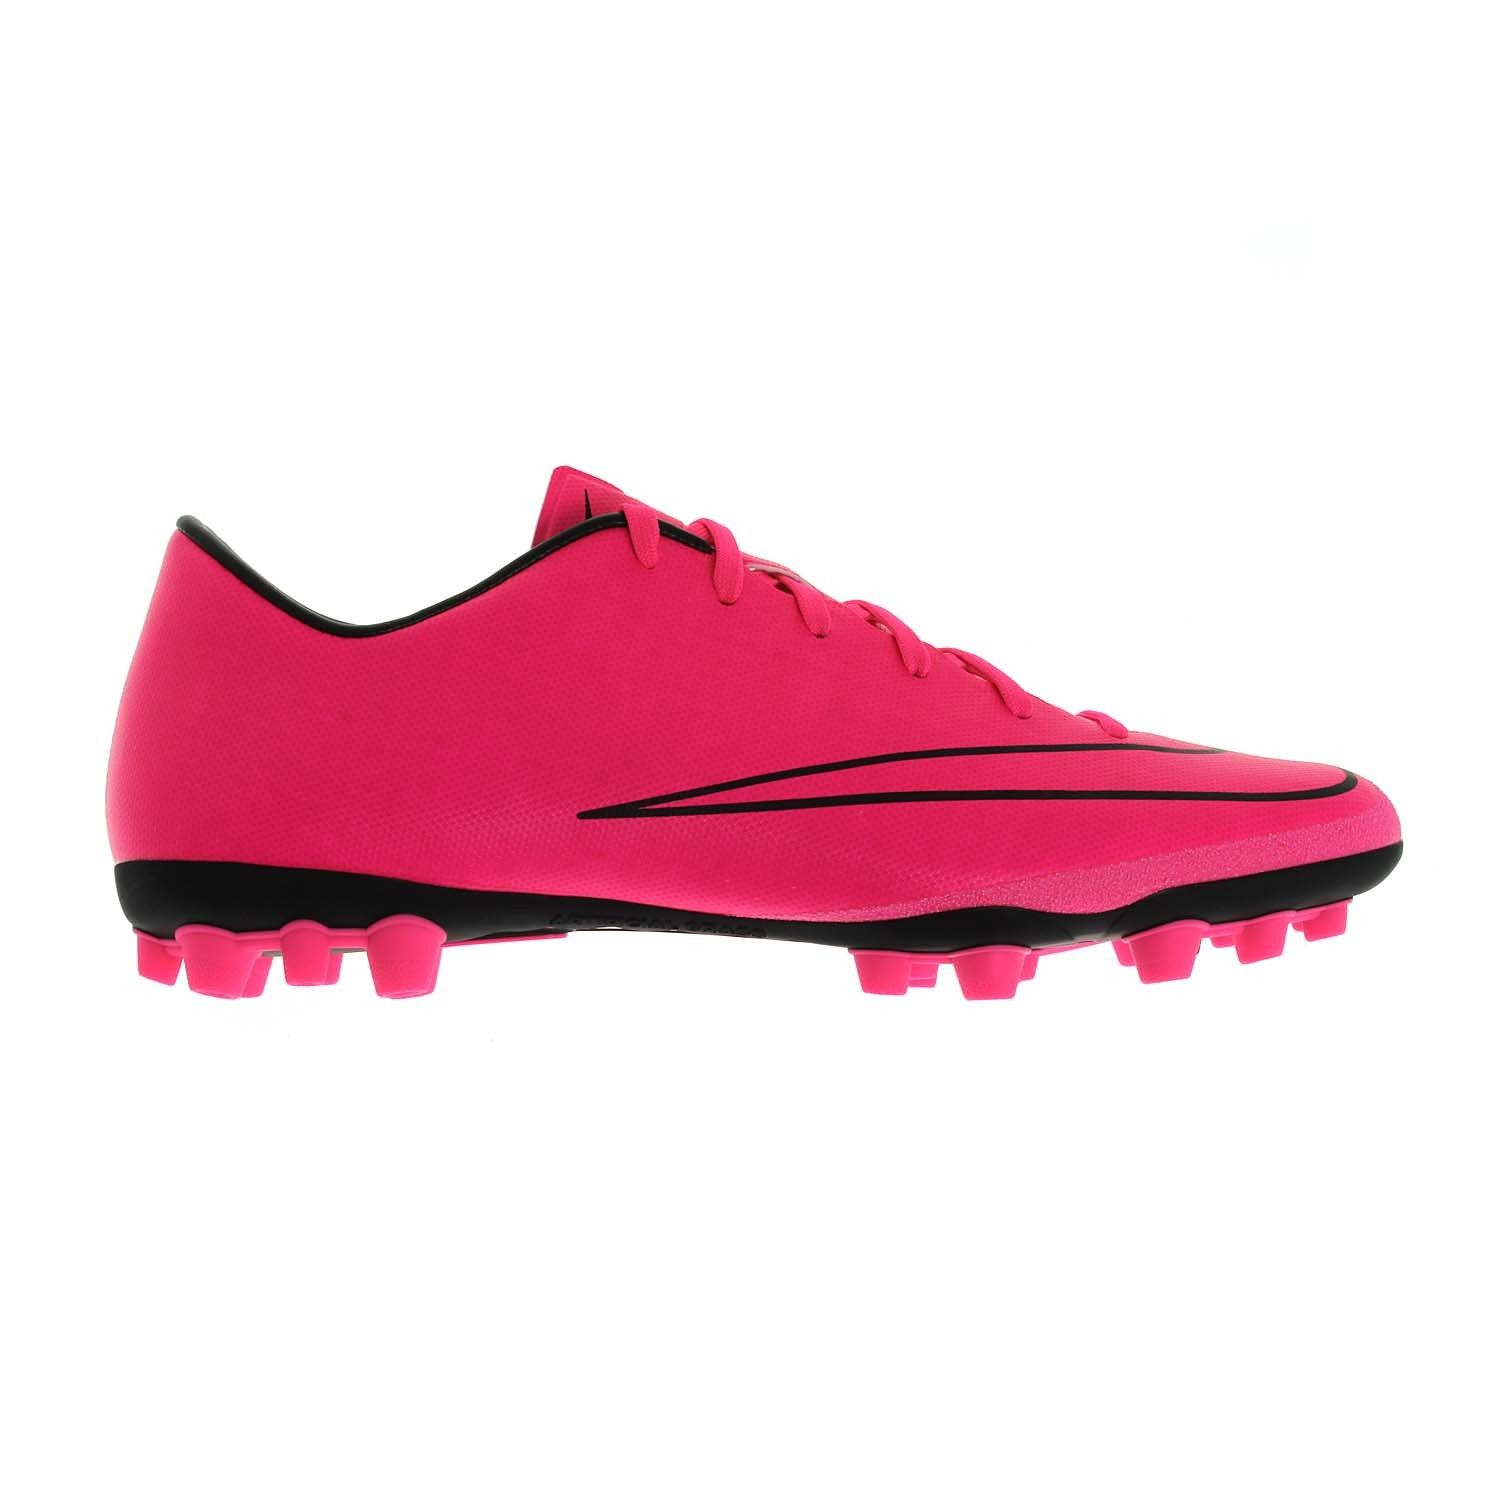 The Nike Mercurial Victory V Men\u0027s Artificial-Grass Football Cleat is built  for control and acceleration during play, with soft synthetic leather for  ...